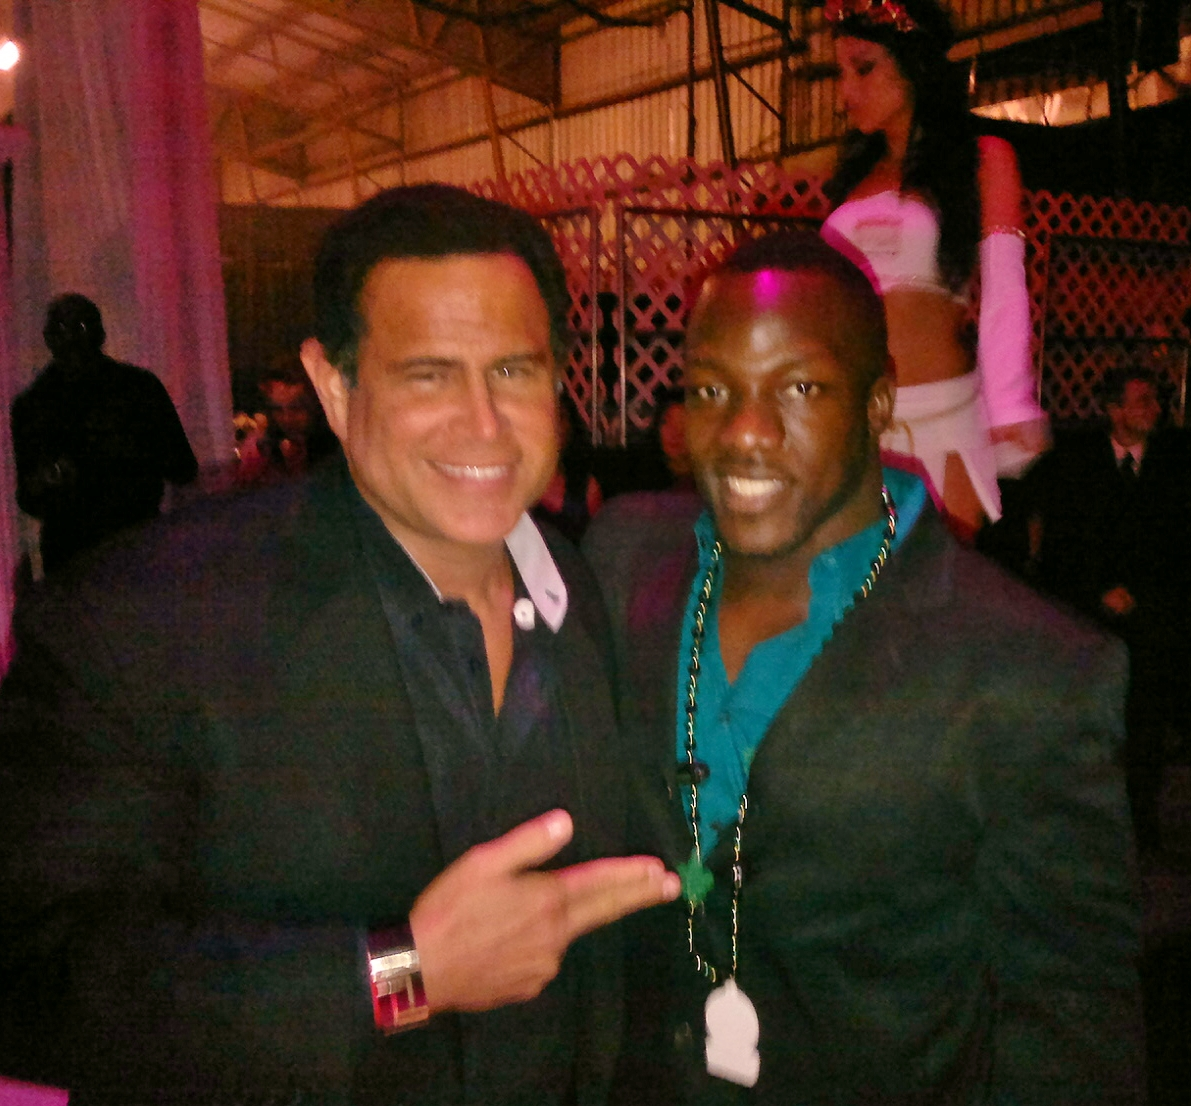 Keith Middlebrook and Rennie Currenattend the Maxim, Leather & Laces, Super Bowl Charity Benefits.